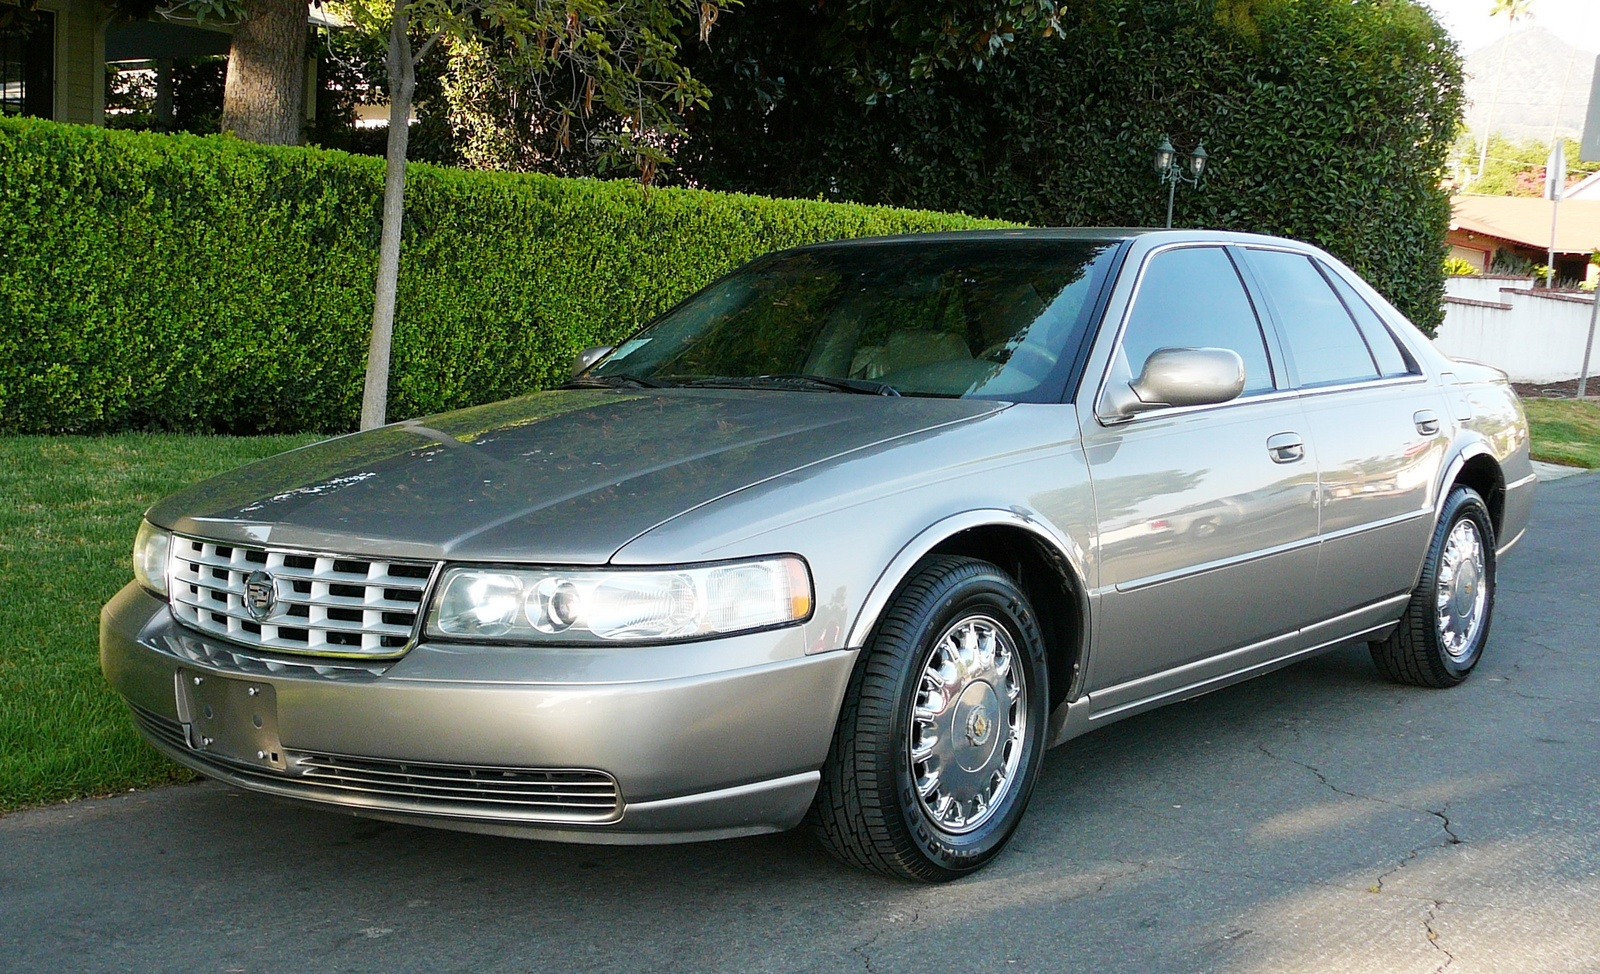 2002 cadillac seville exterior pictures cargurus. Cars Review. Best American Auto & Cars Review